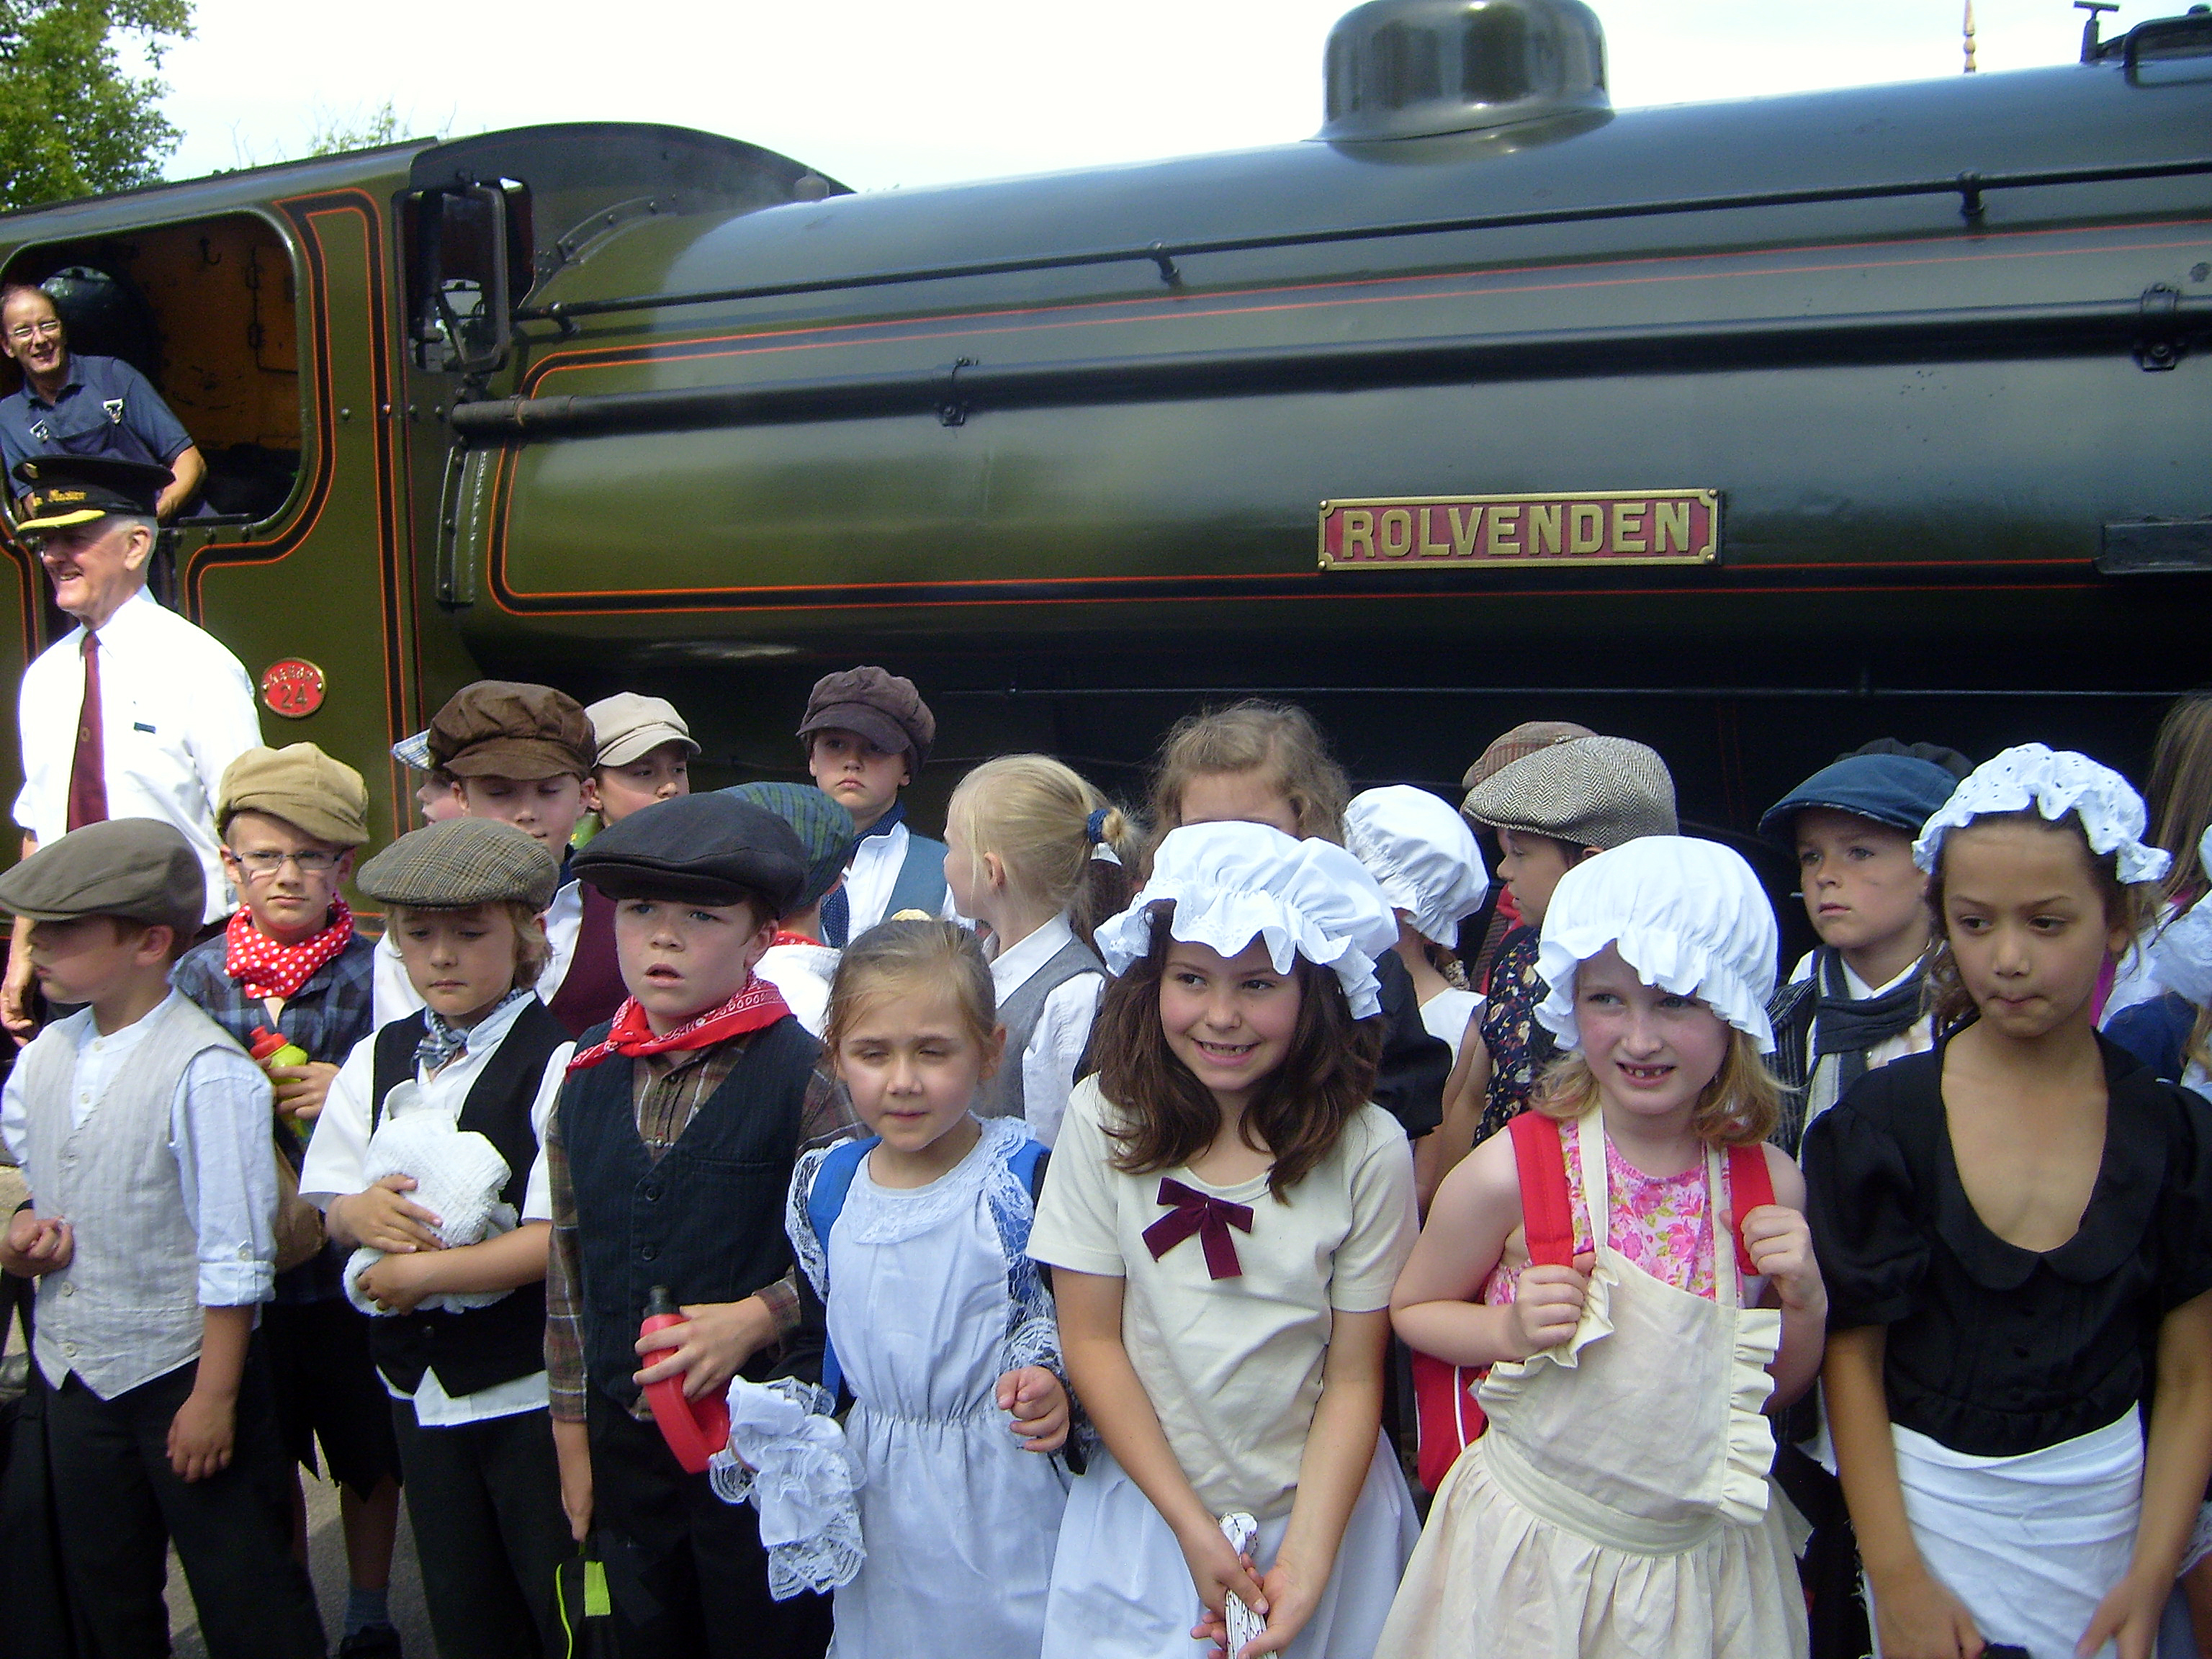 Boys and girls in Victorian costume pose by Rolvenden, a Victorian steam engine. It's scary by the engine!  (at the Kent and East Sussex Railway)